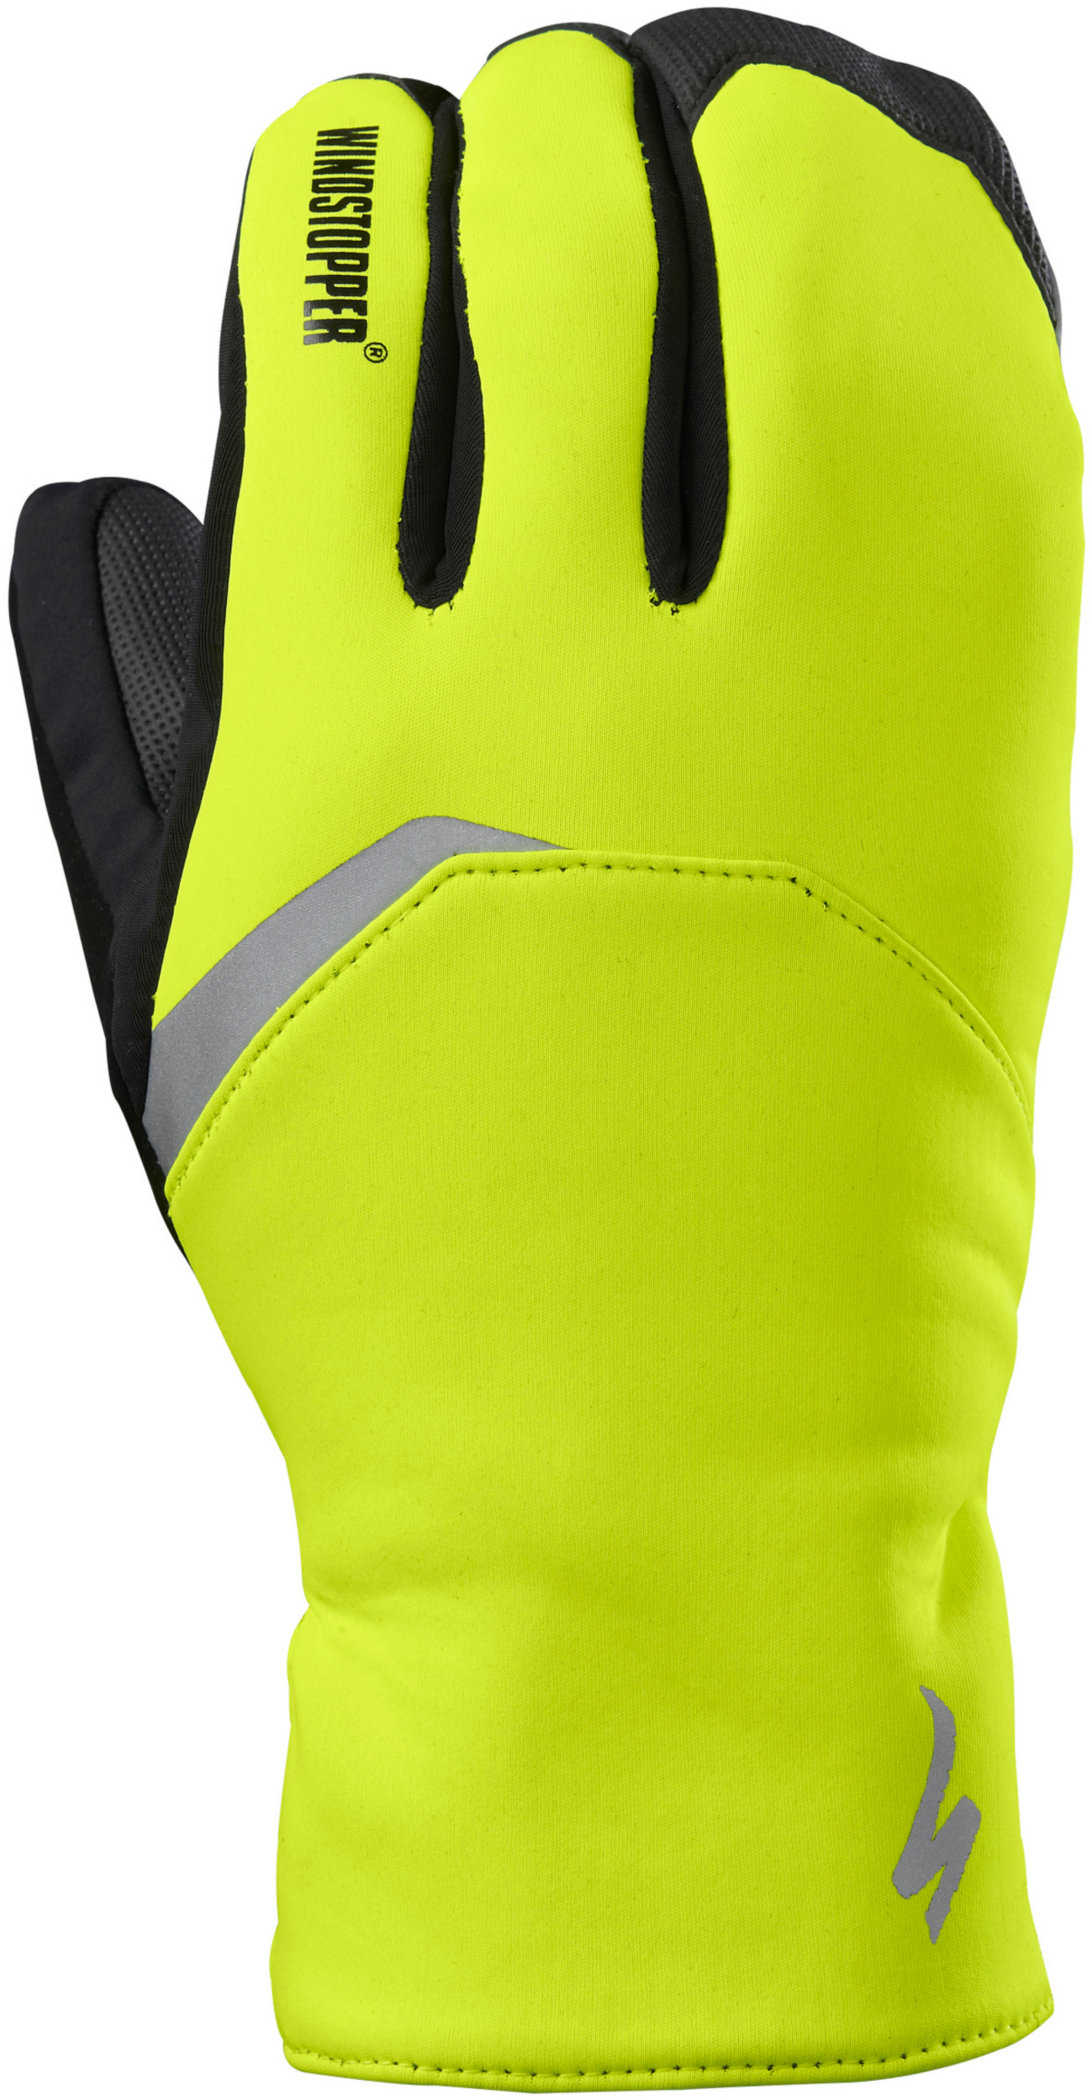 SPECIALIZED ELEMENT 2.0 GLOVE LF NEON YEL S - Pulsschlag Bike+Sport